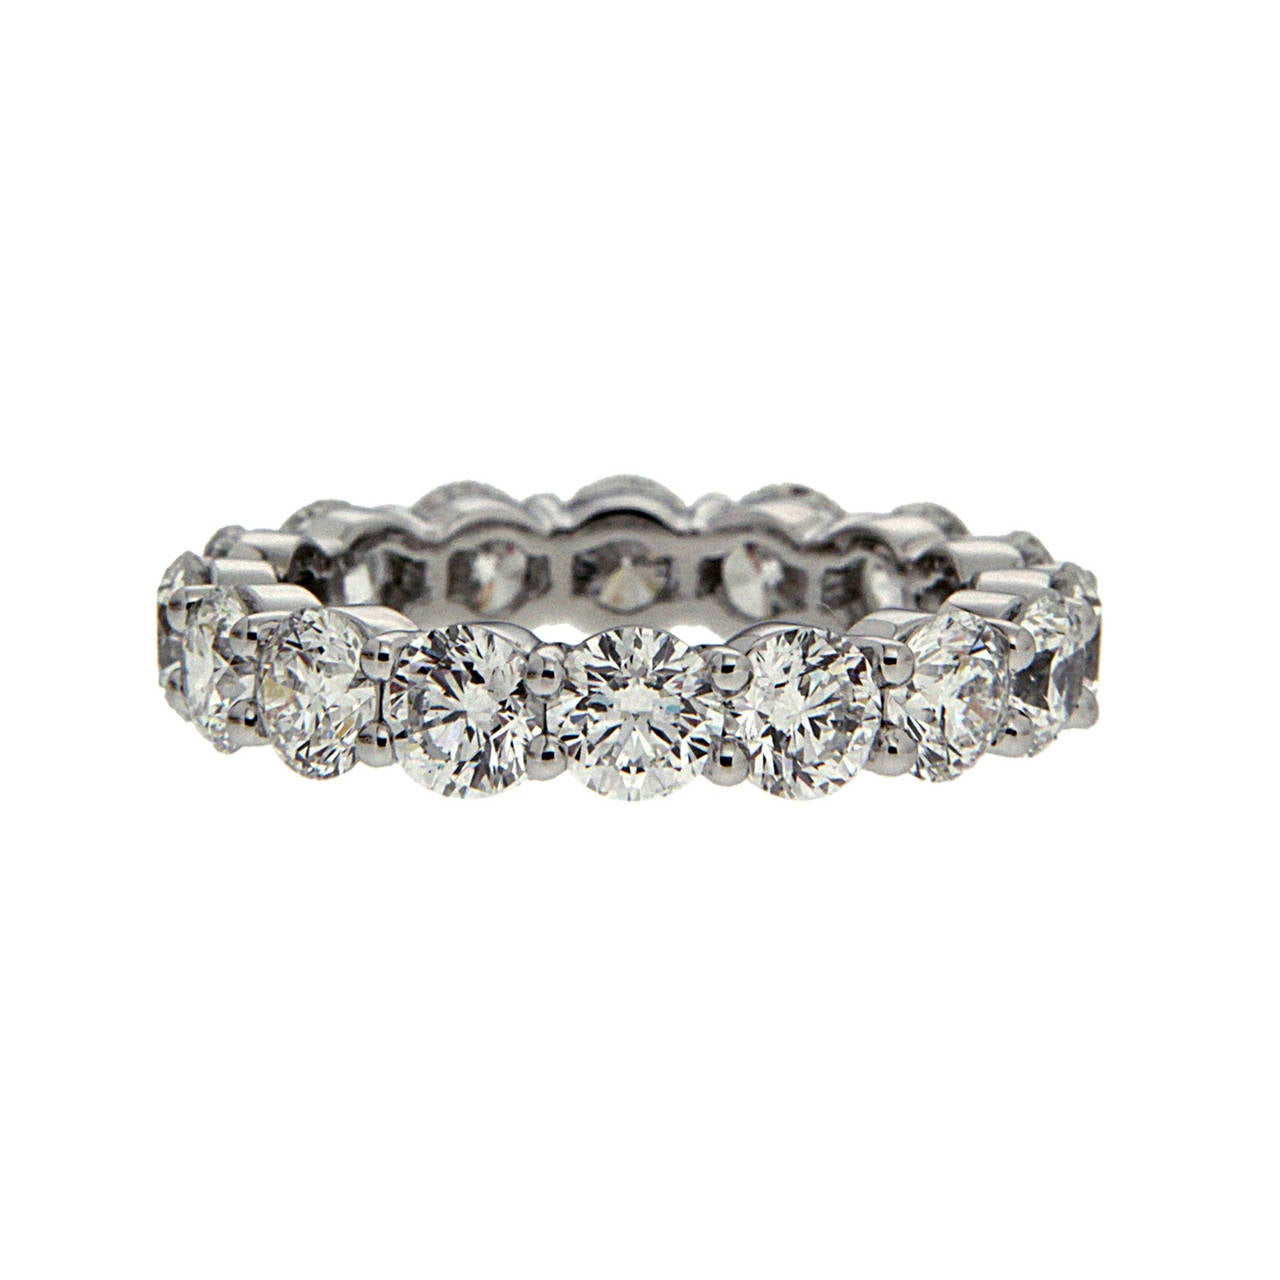 This eternity wedding band features prong set round brilliant diamonds.